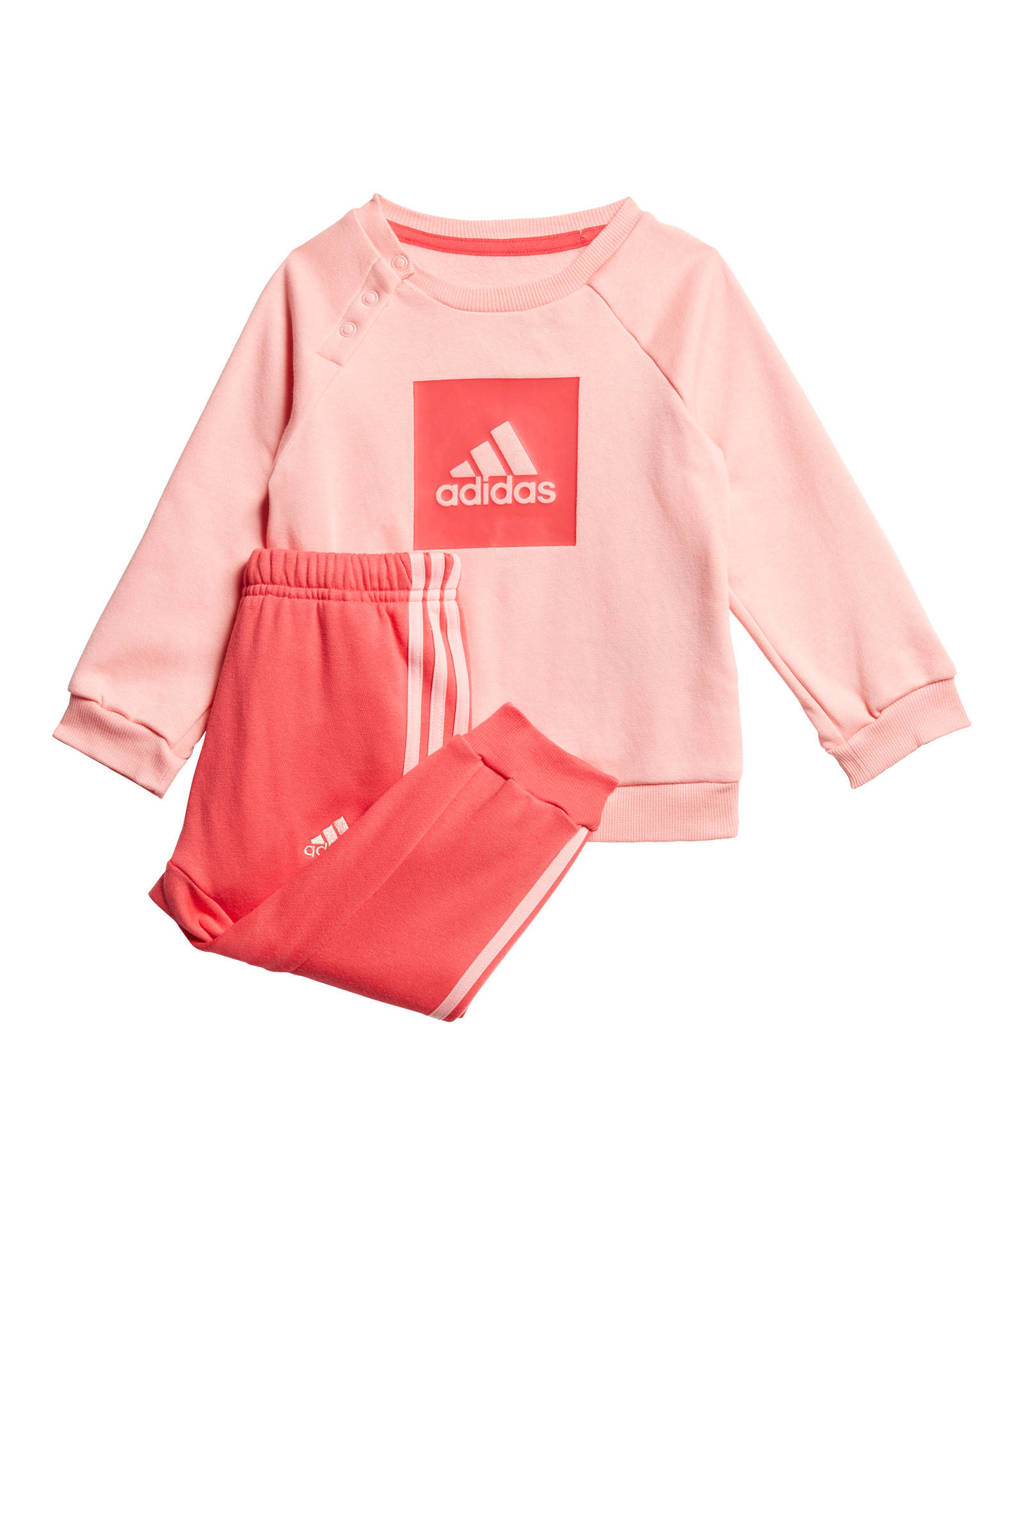 adidas Performance trainingspak roze, Roze